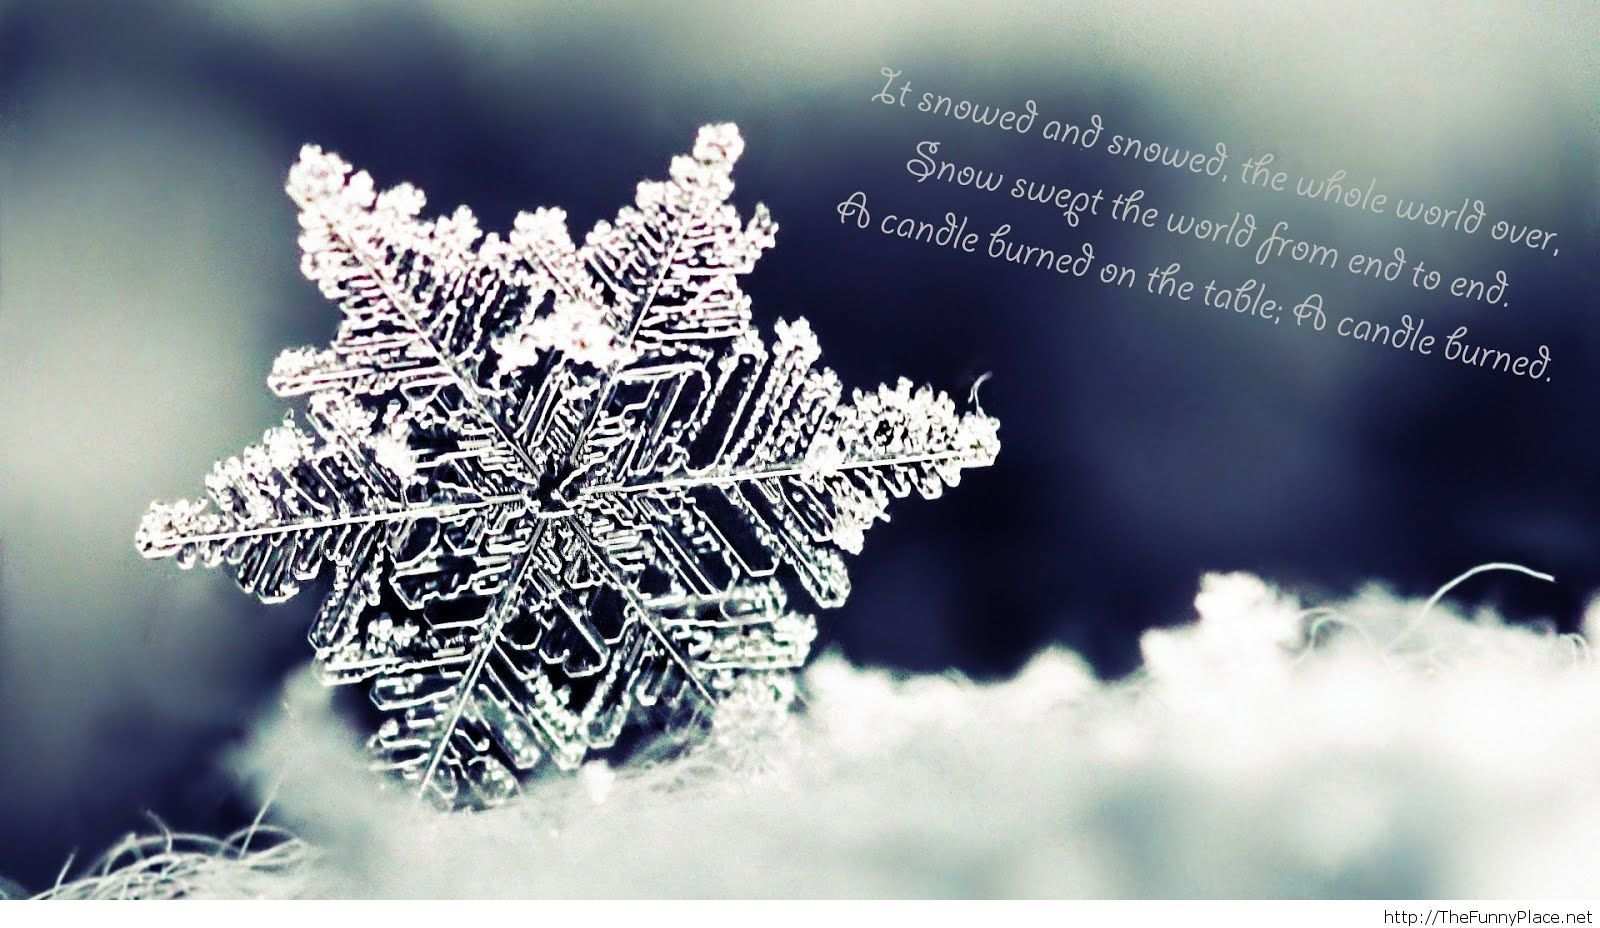 Amazing winter quote with image